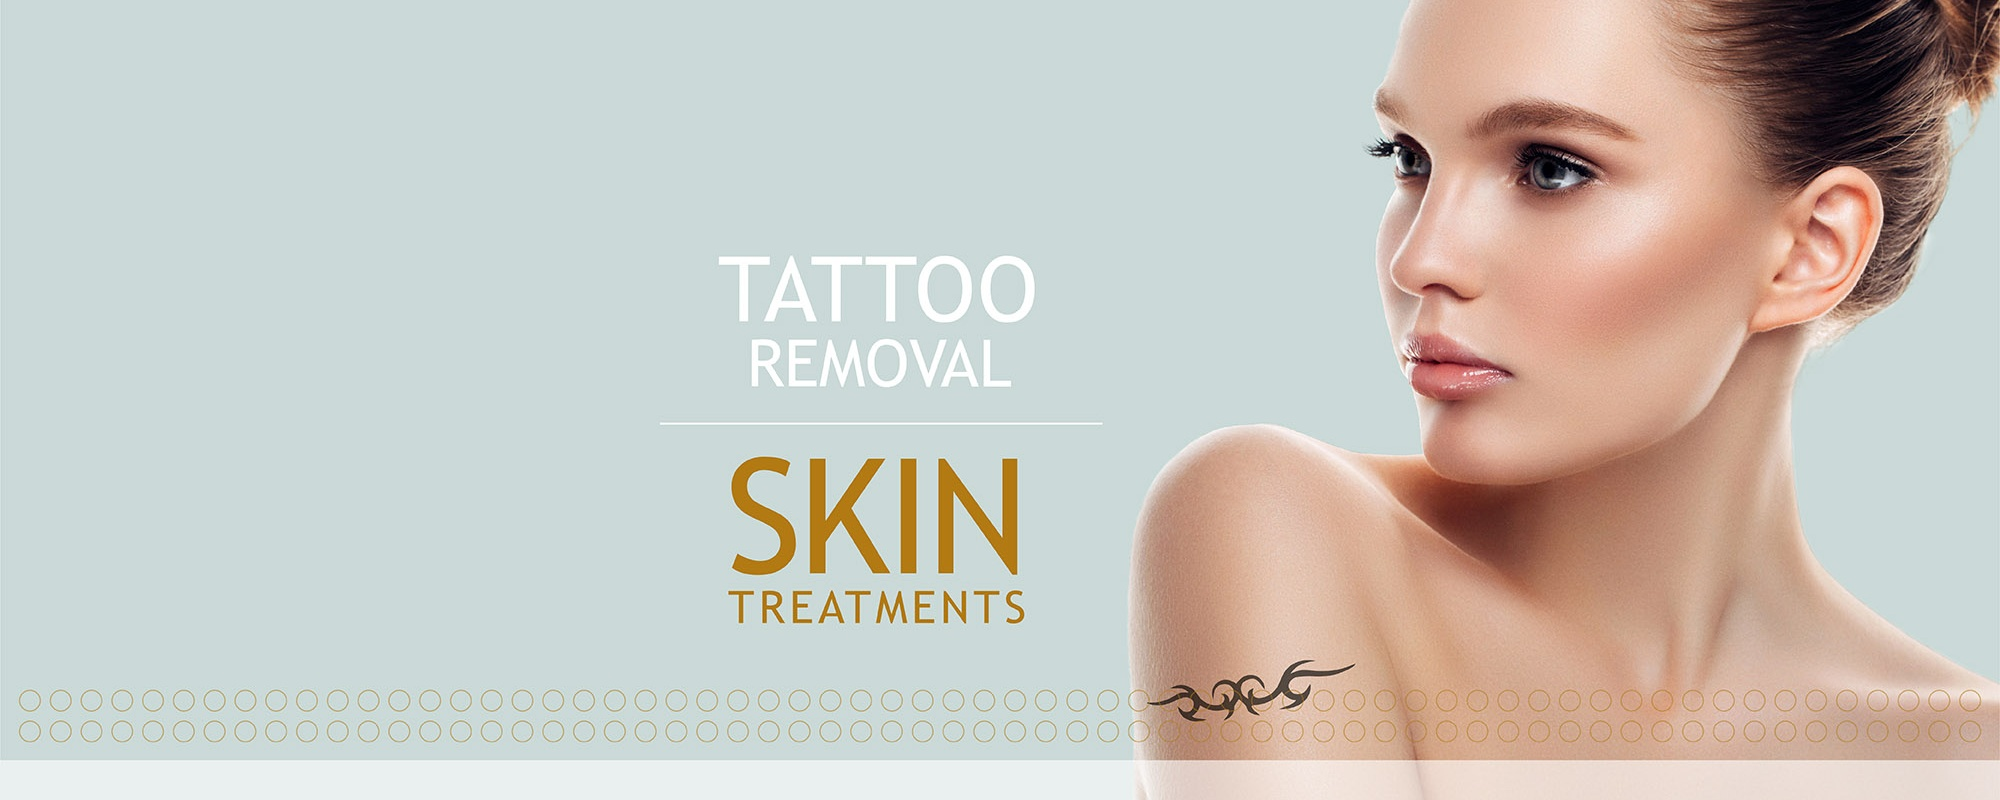 Tattoo Removal - Scinn Medical Centre